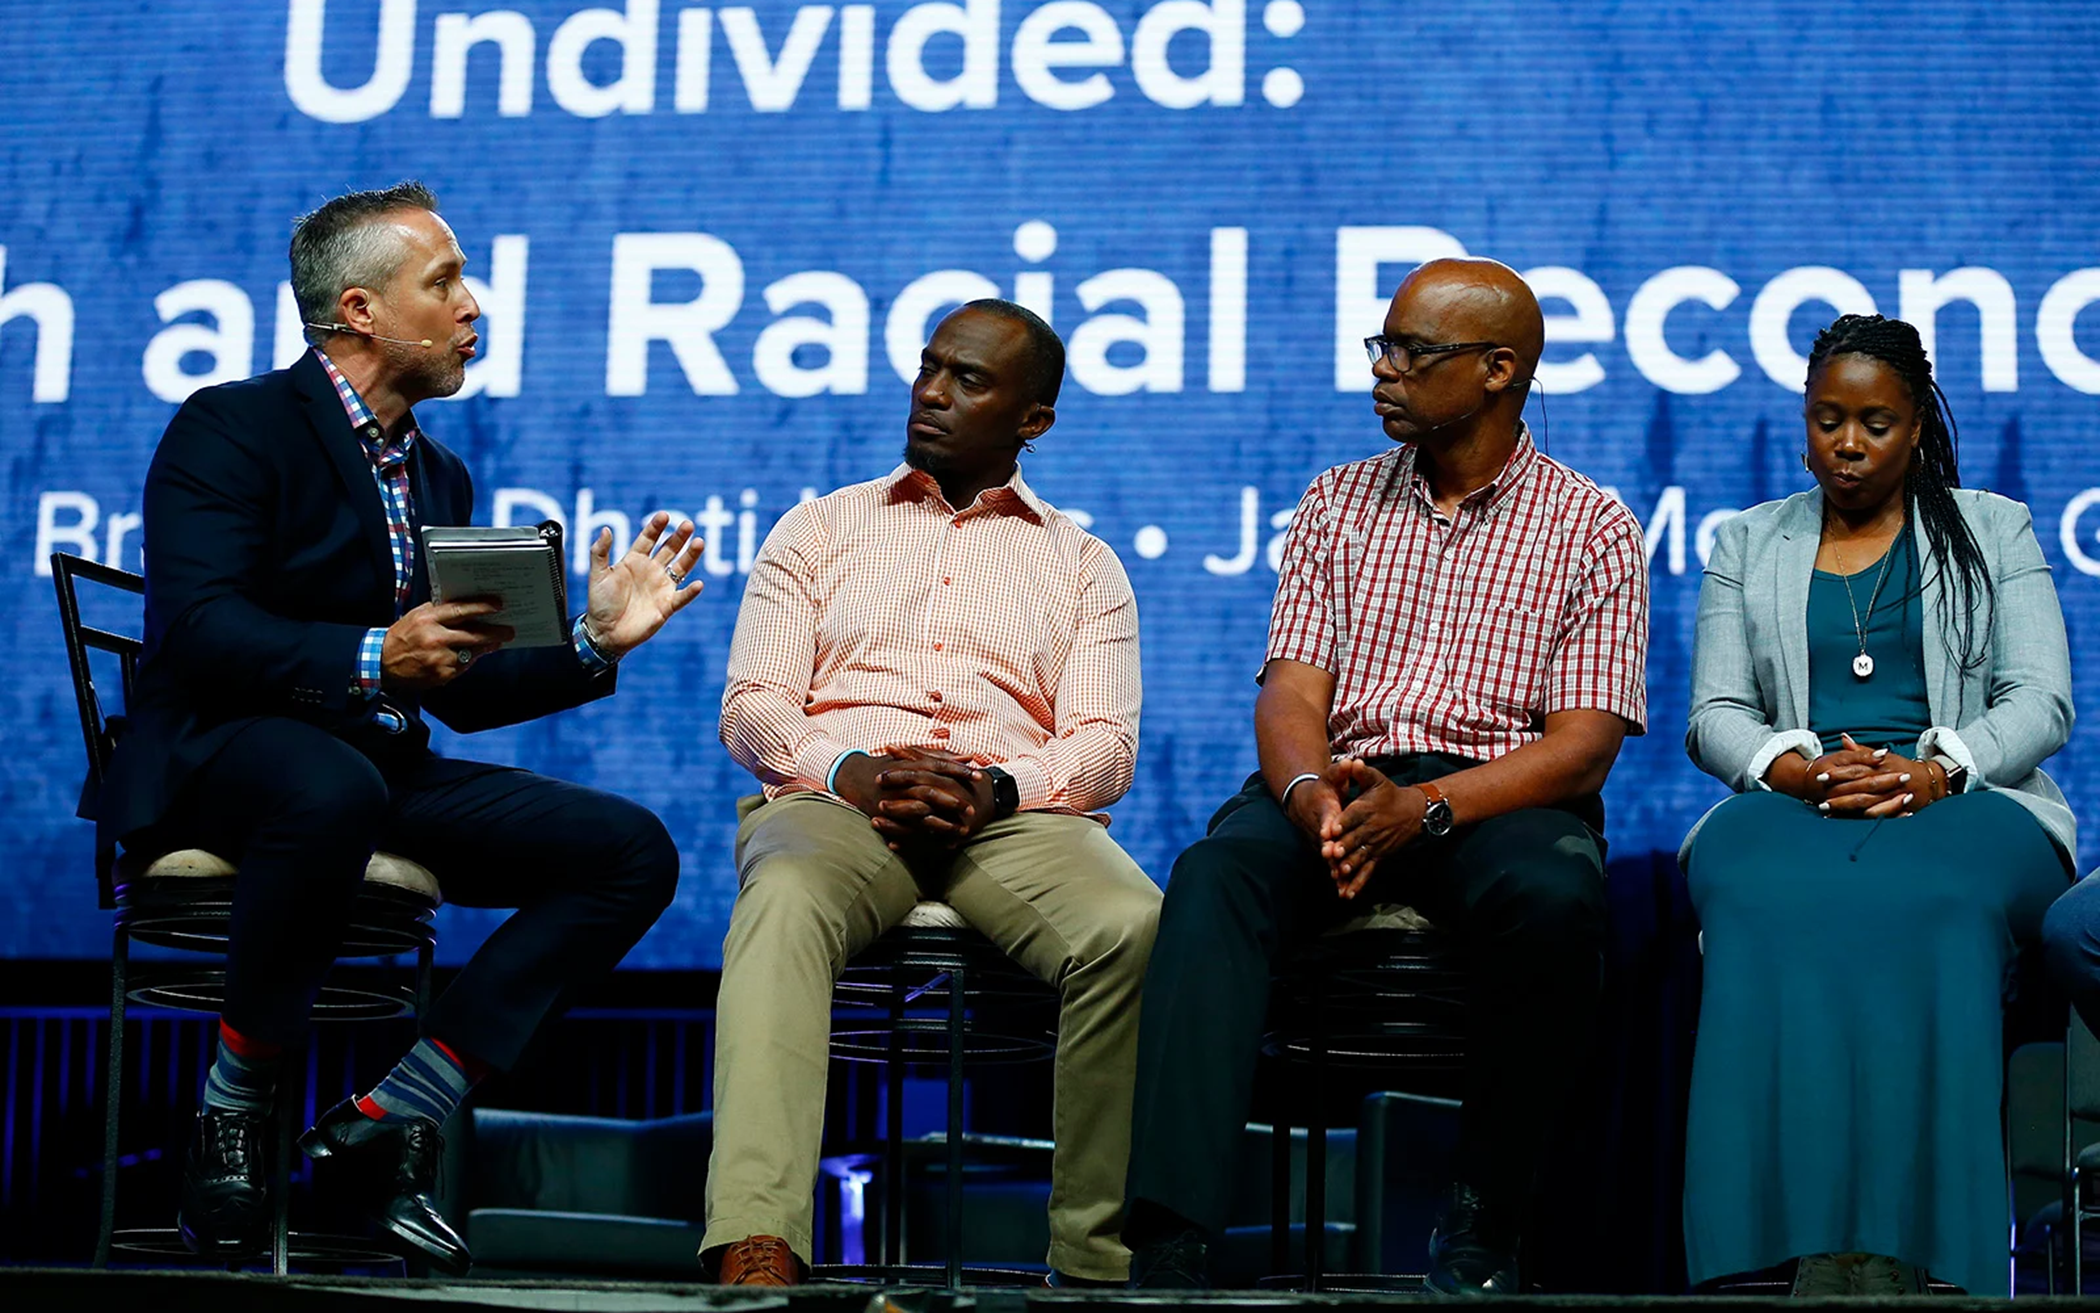 Southern Baptist Leaders Meet After Statement on Critical Race Theory Caused Controversy